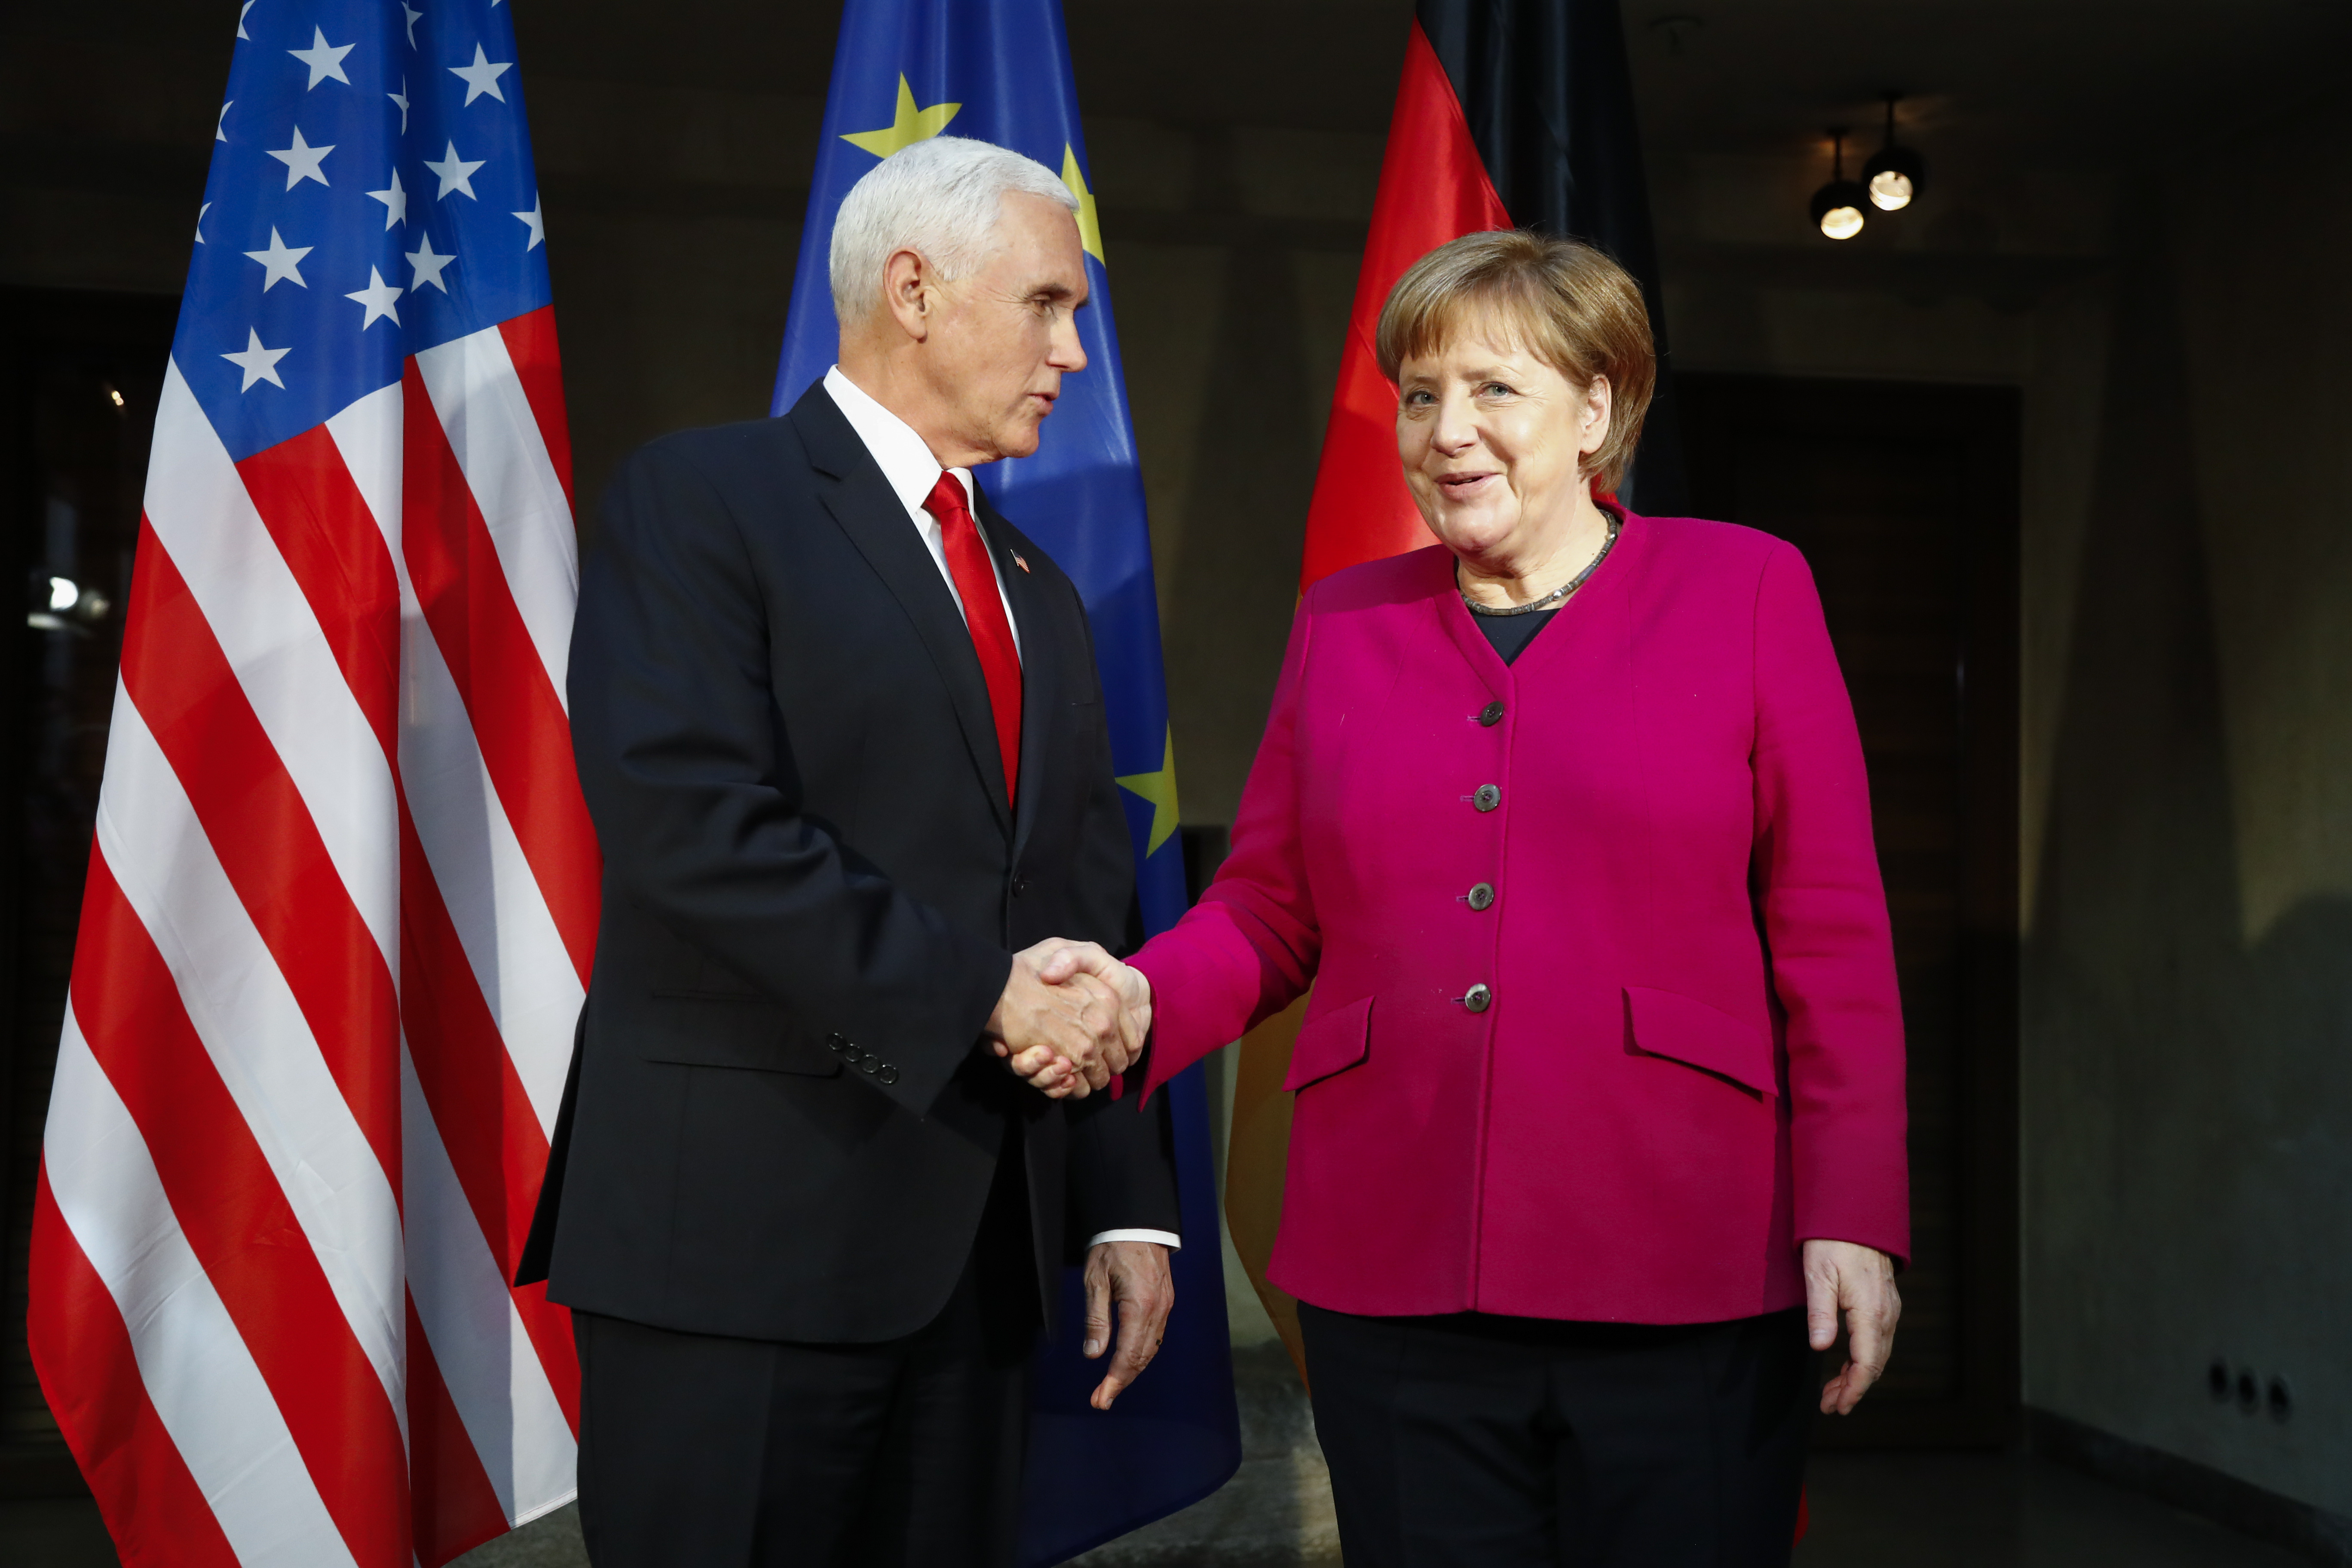 German Chancellor Angela Merkel, right, welcomes United States Vice President Mike Pence, left, for a bilateral meeting during the Munich Security Conference in Munich, Germany, Saturday, Feb. 16, 2019.